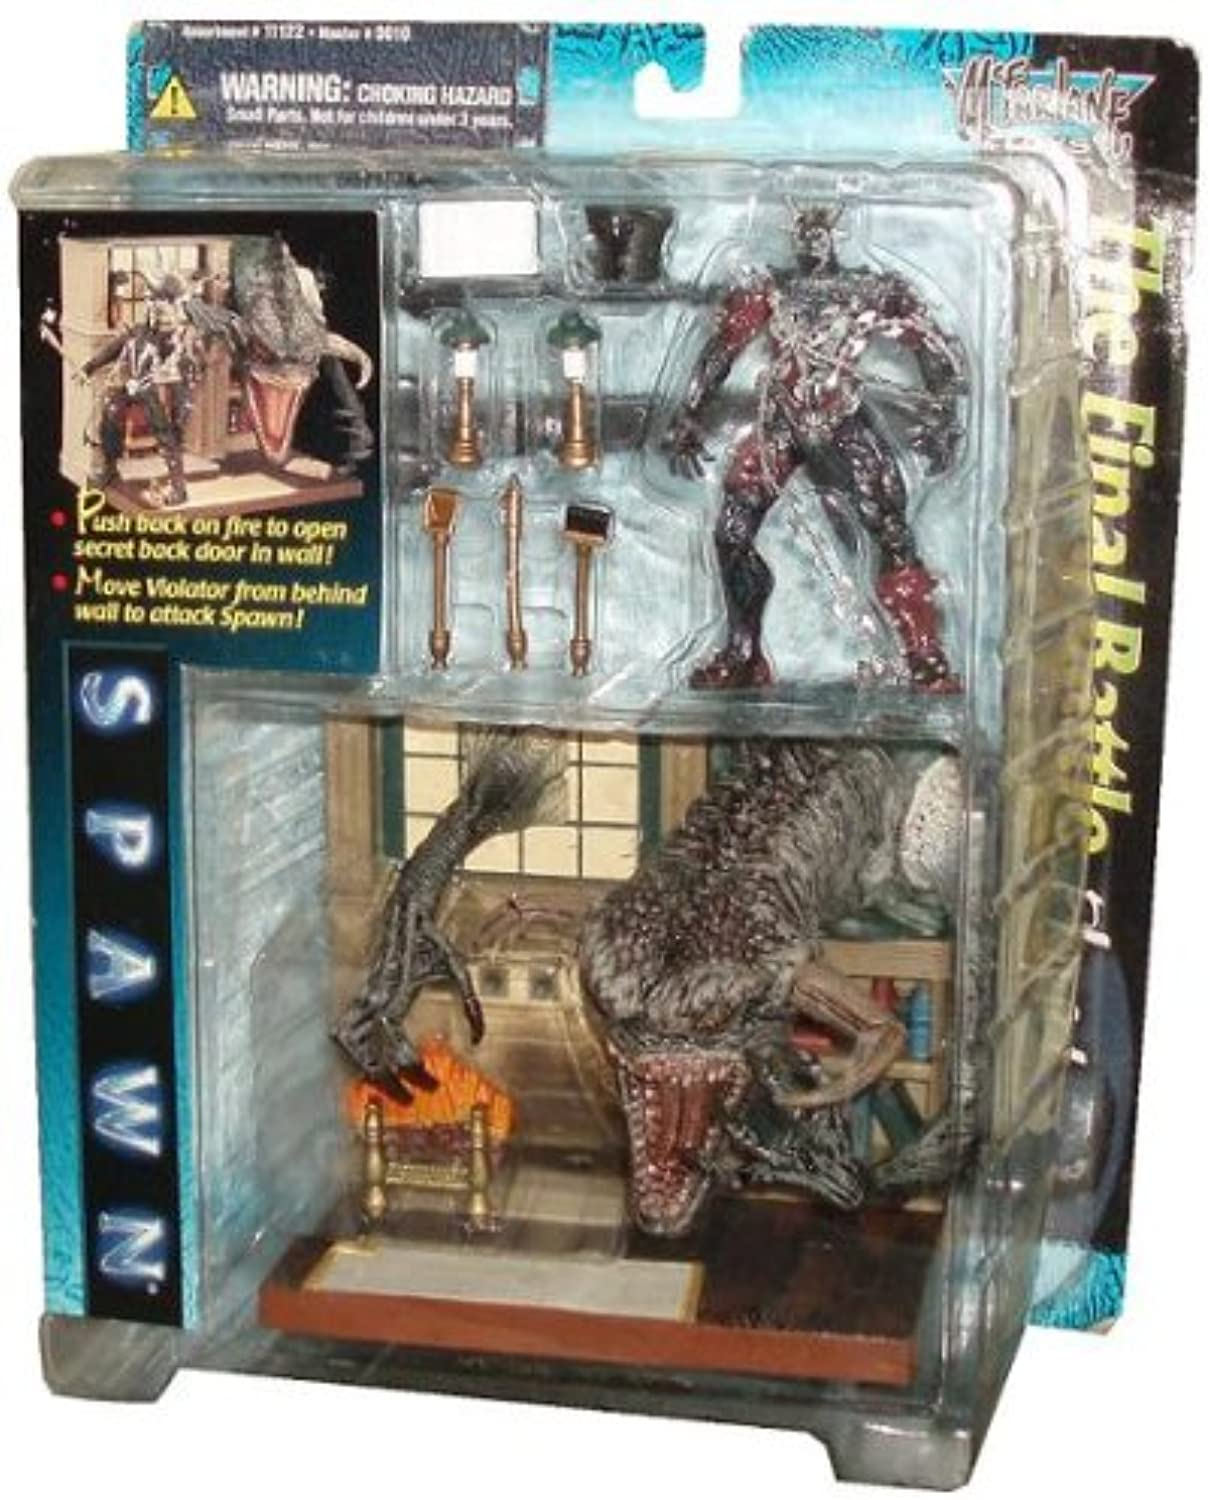 McFarlane Spawn the Movie Year 1997 Playset  The Final Battle Playset with Spawn Figure and purpletor on the Background Stage